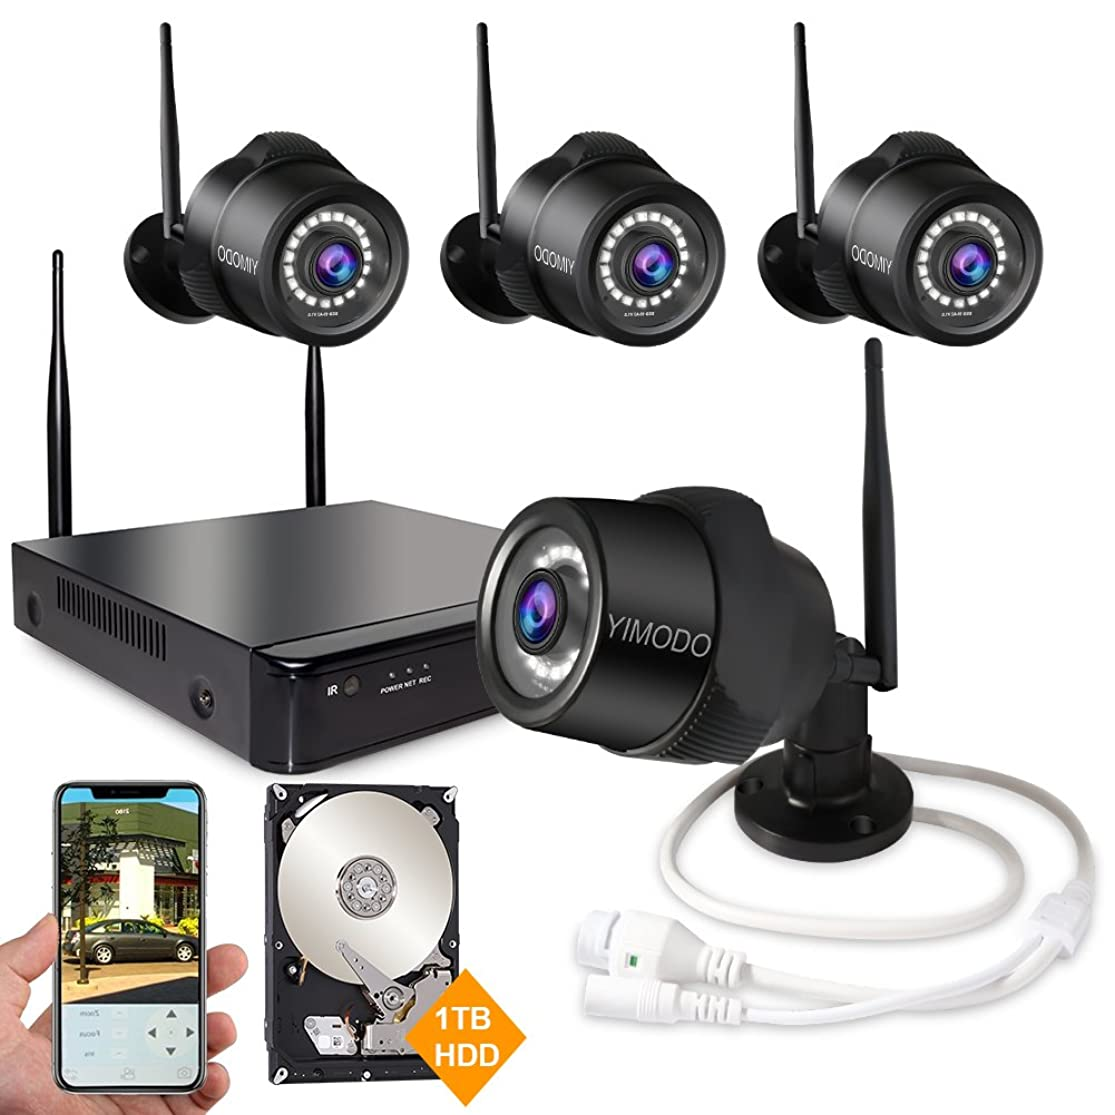 Rraycom 4CH 1080P HD NVR Wireless Security Camera System,4PC 2.0MP Weatherproof Indoor/Outdoor Survillance Cameras with 115ft Night Vision,Support Smartphone Remote View with 1TB Hard Drive aqrykzxe1